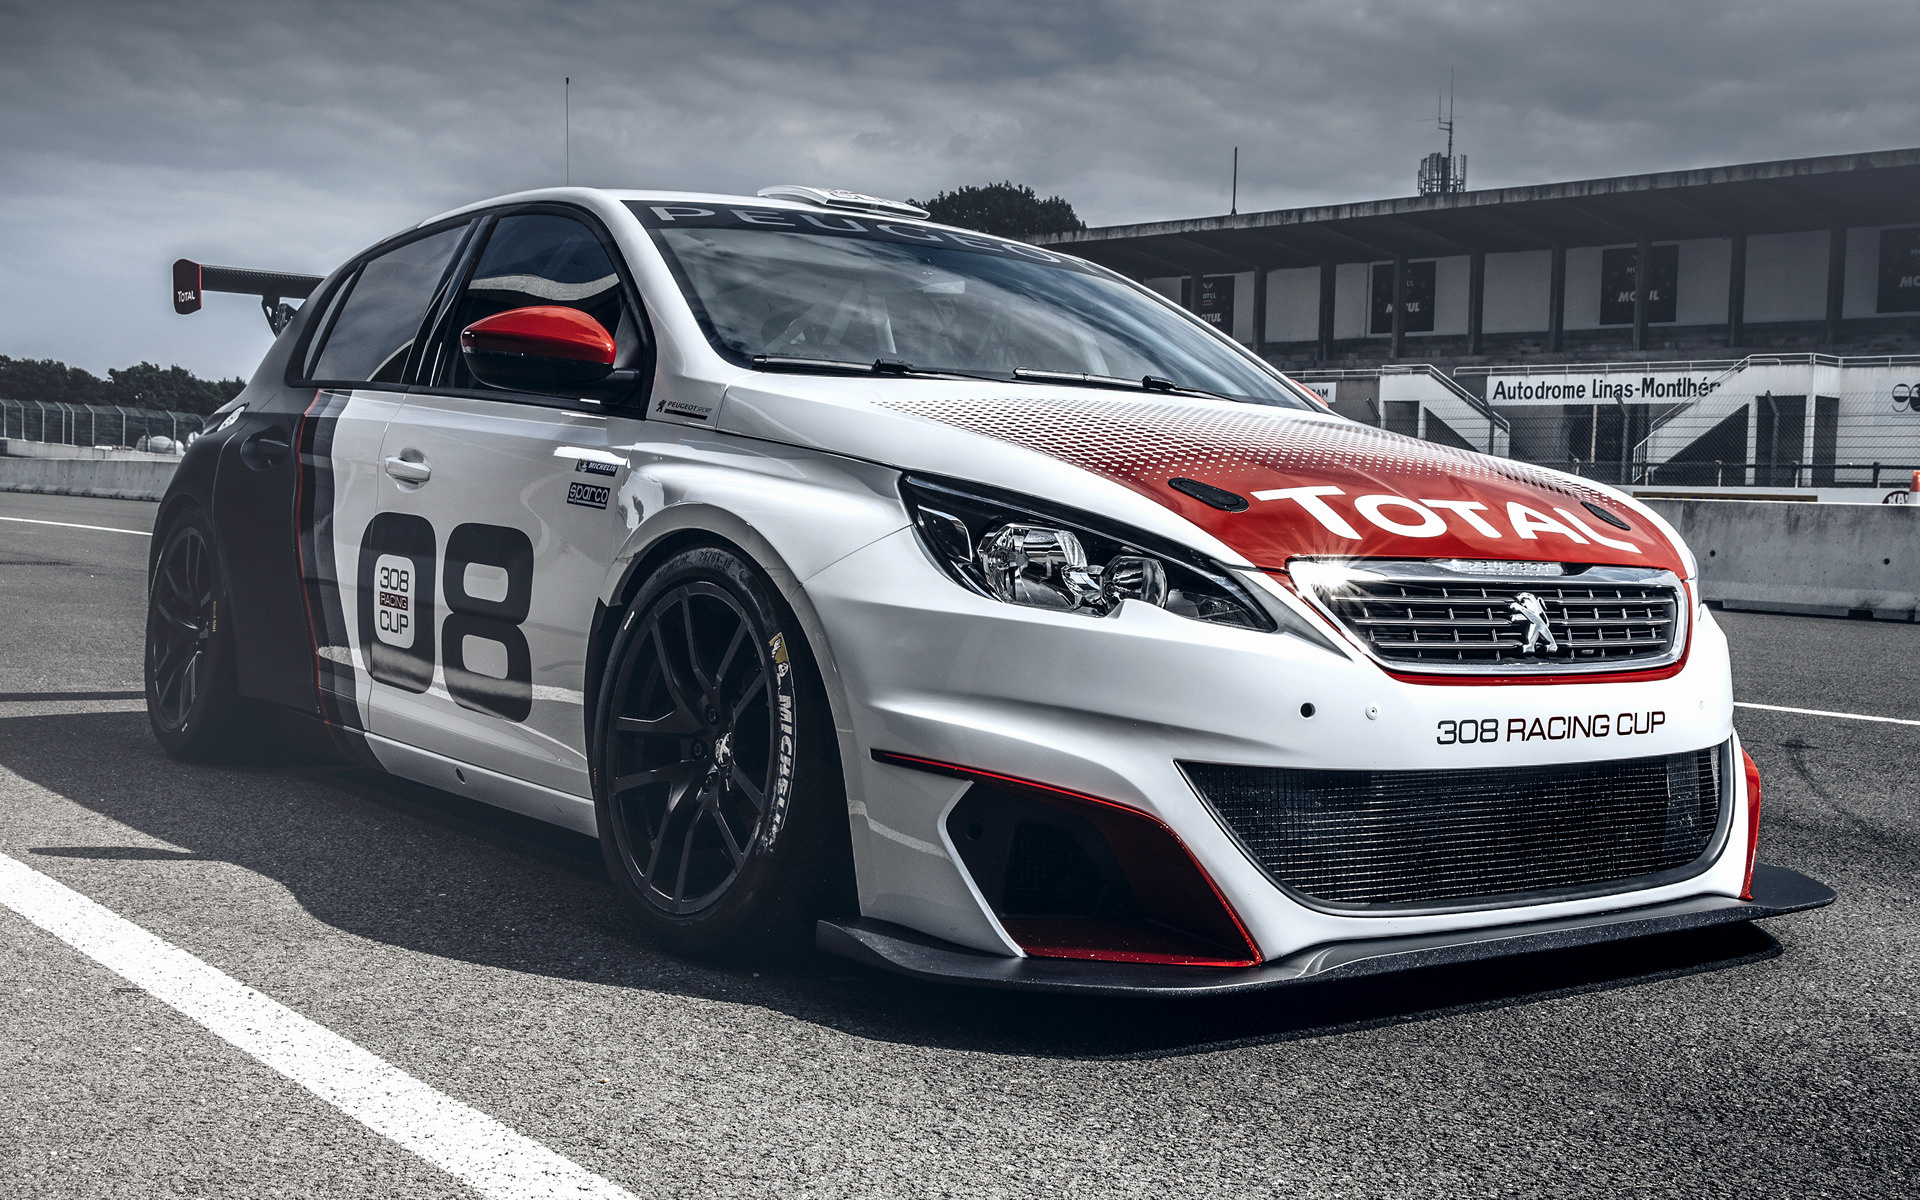 2016 Peugeot 308 Racing Cup Wallpapers And Hd Images